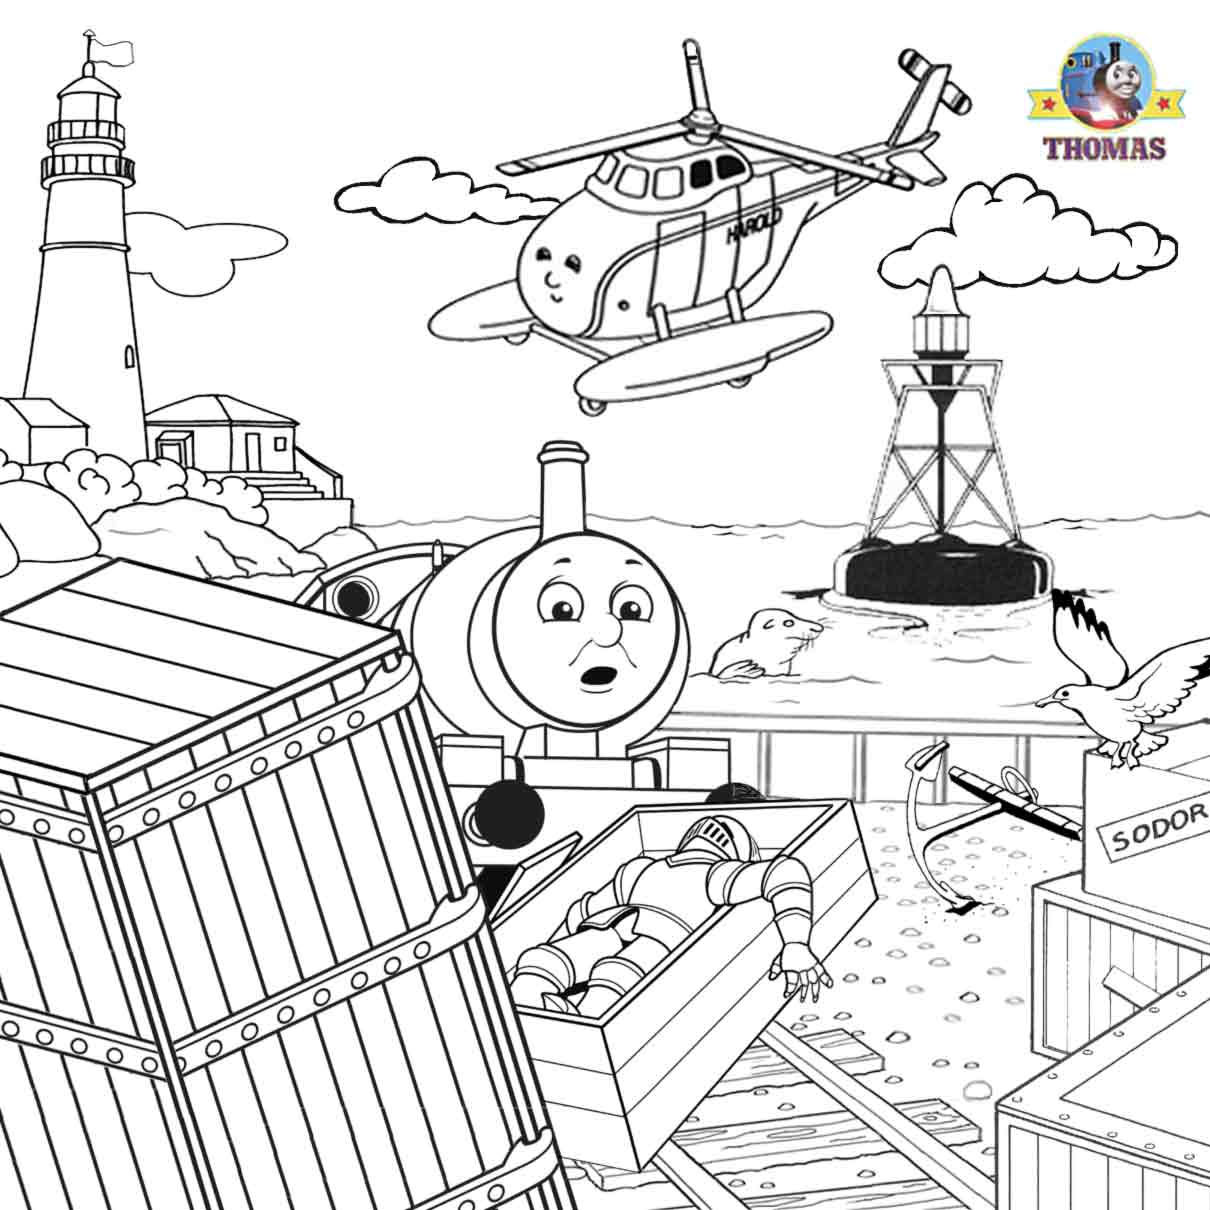 Thomas Tank Holiday Train Trip Coloring Steam Engine Journey Pictures To Color Art Drawings For Kids